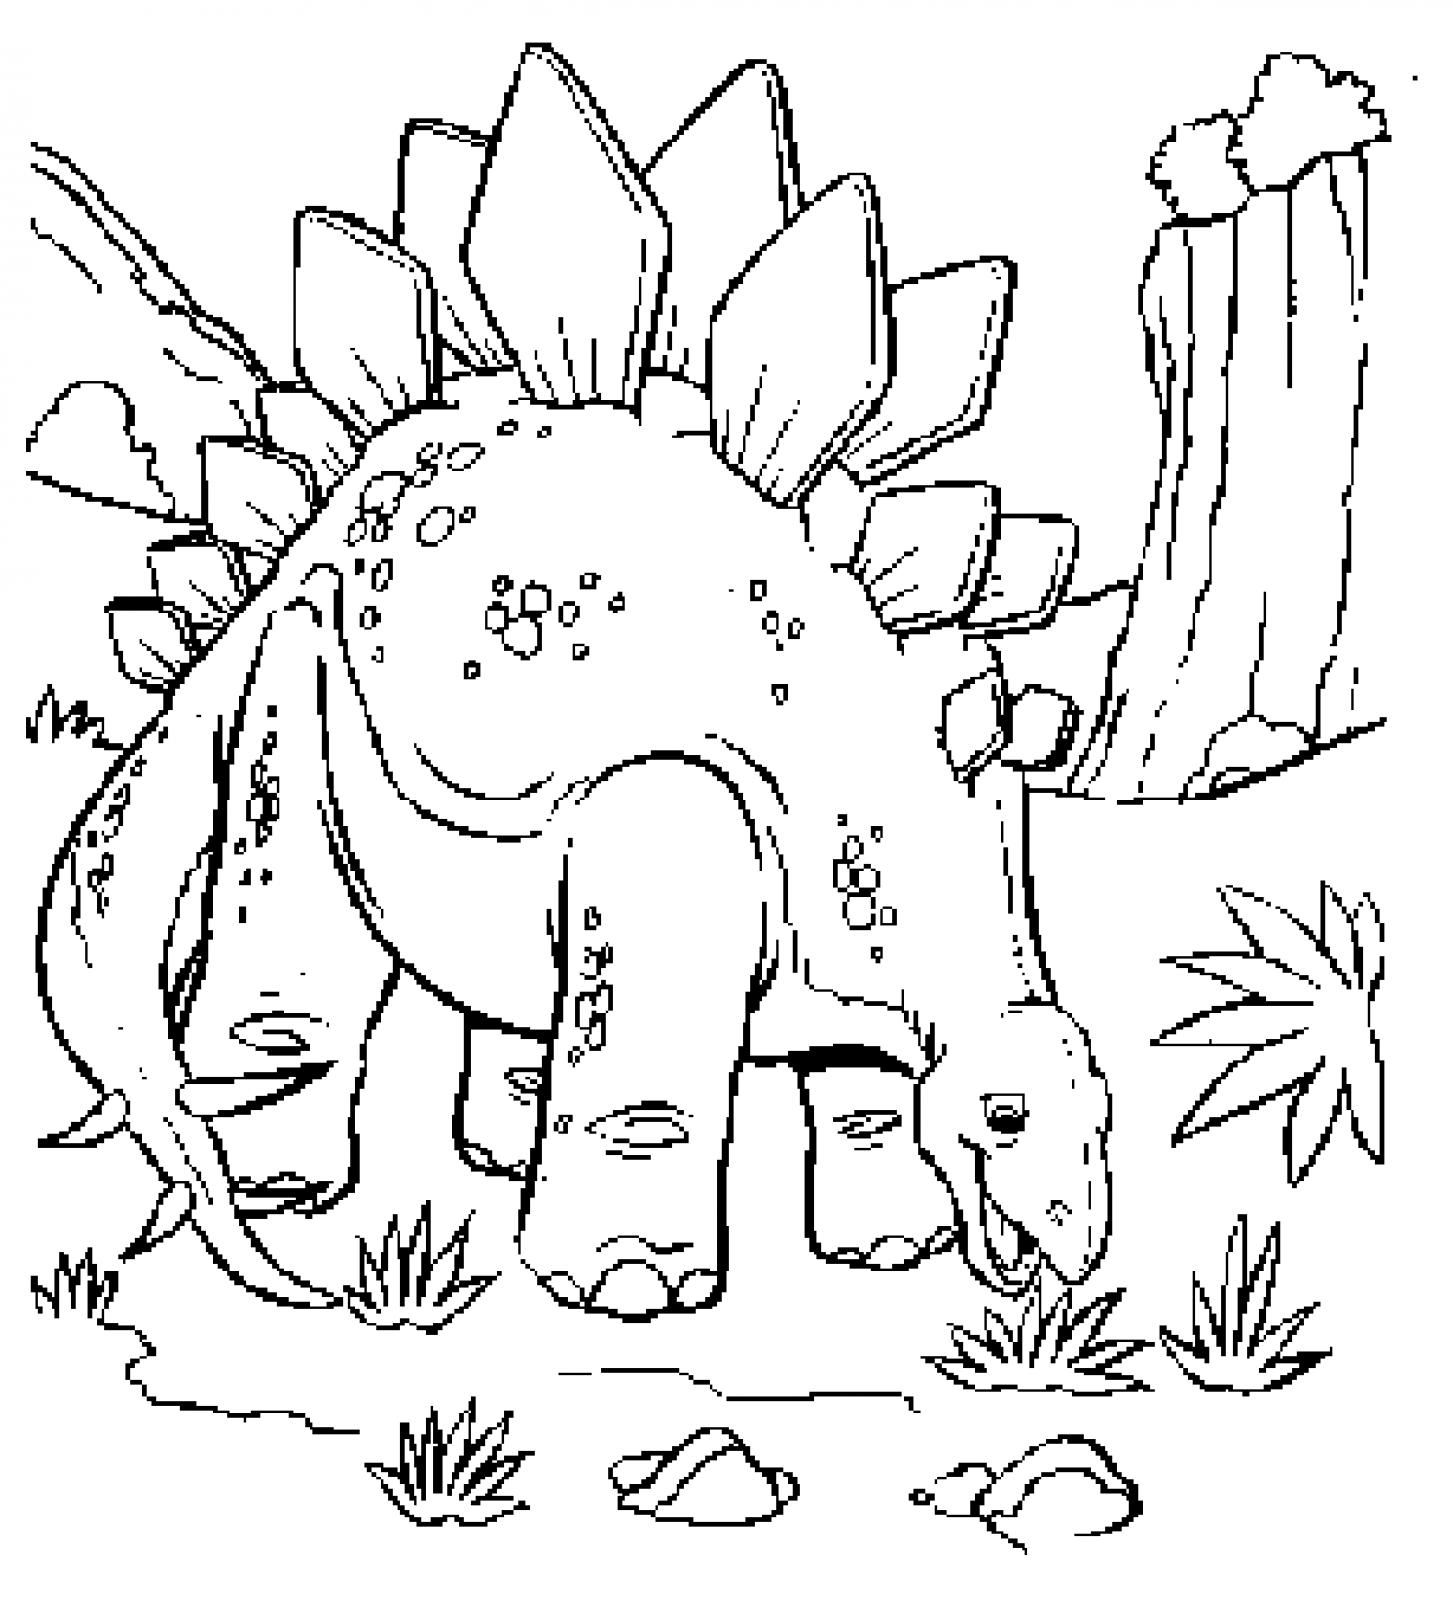 Dinosaur coloring in pictures - Dinosaur Coloring Pages Free Printable 4